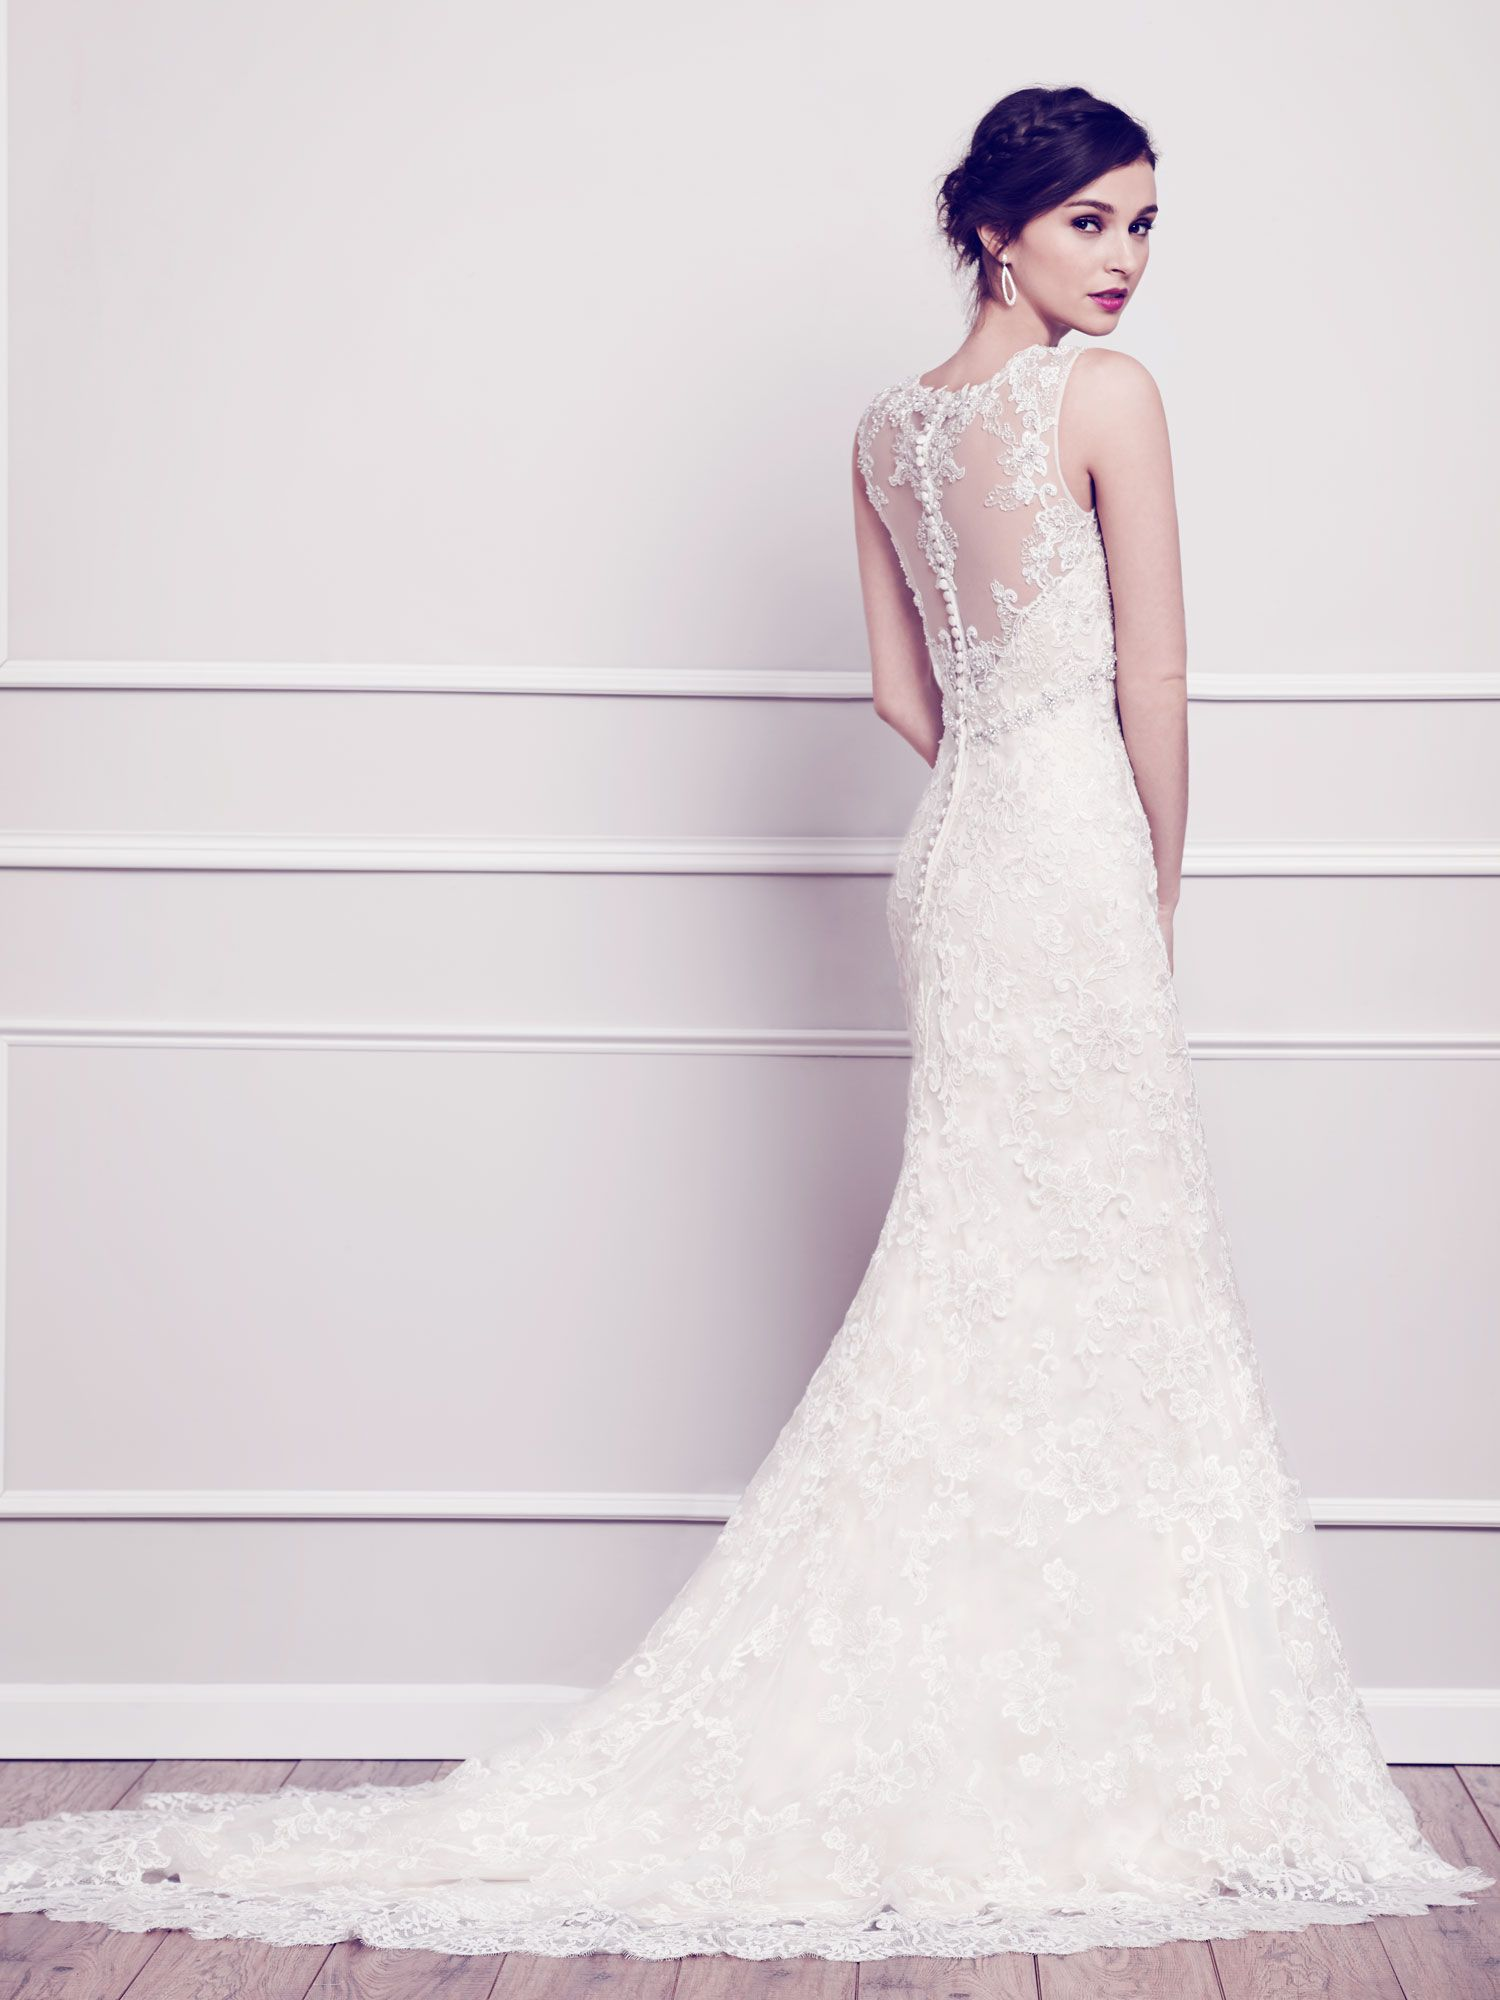 Sheer top wedding dress  Kenneth Winston  Private Label By G  The dress  Pinterest